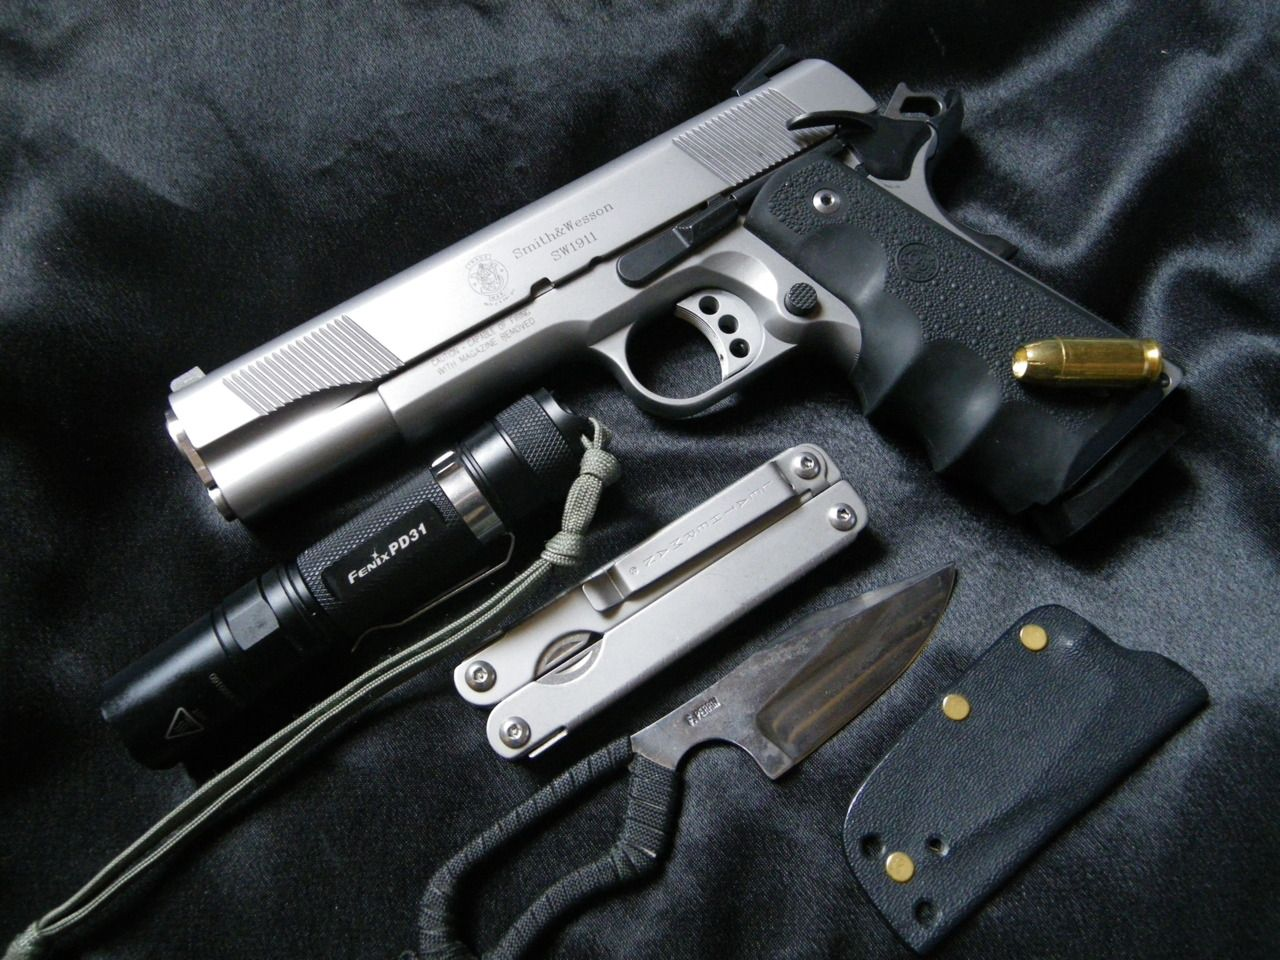 Beautiful S&W 1911! I wish I could have an EDC like this one here in Brazil.